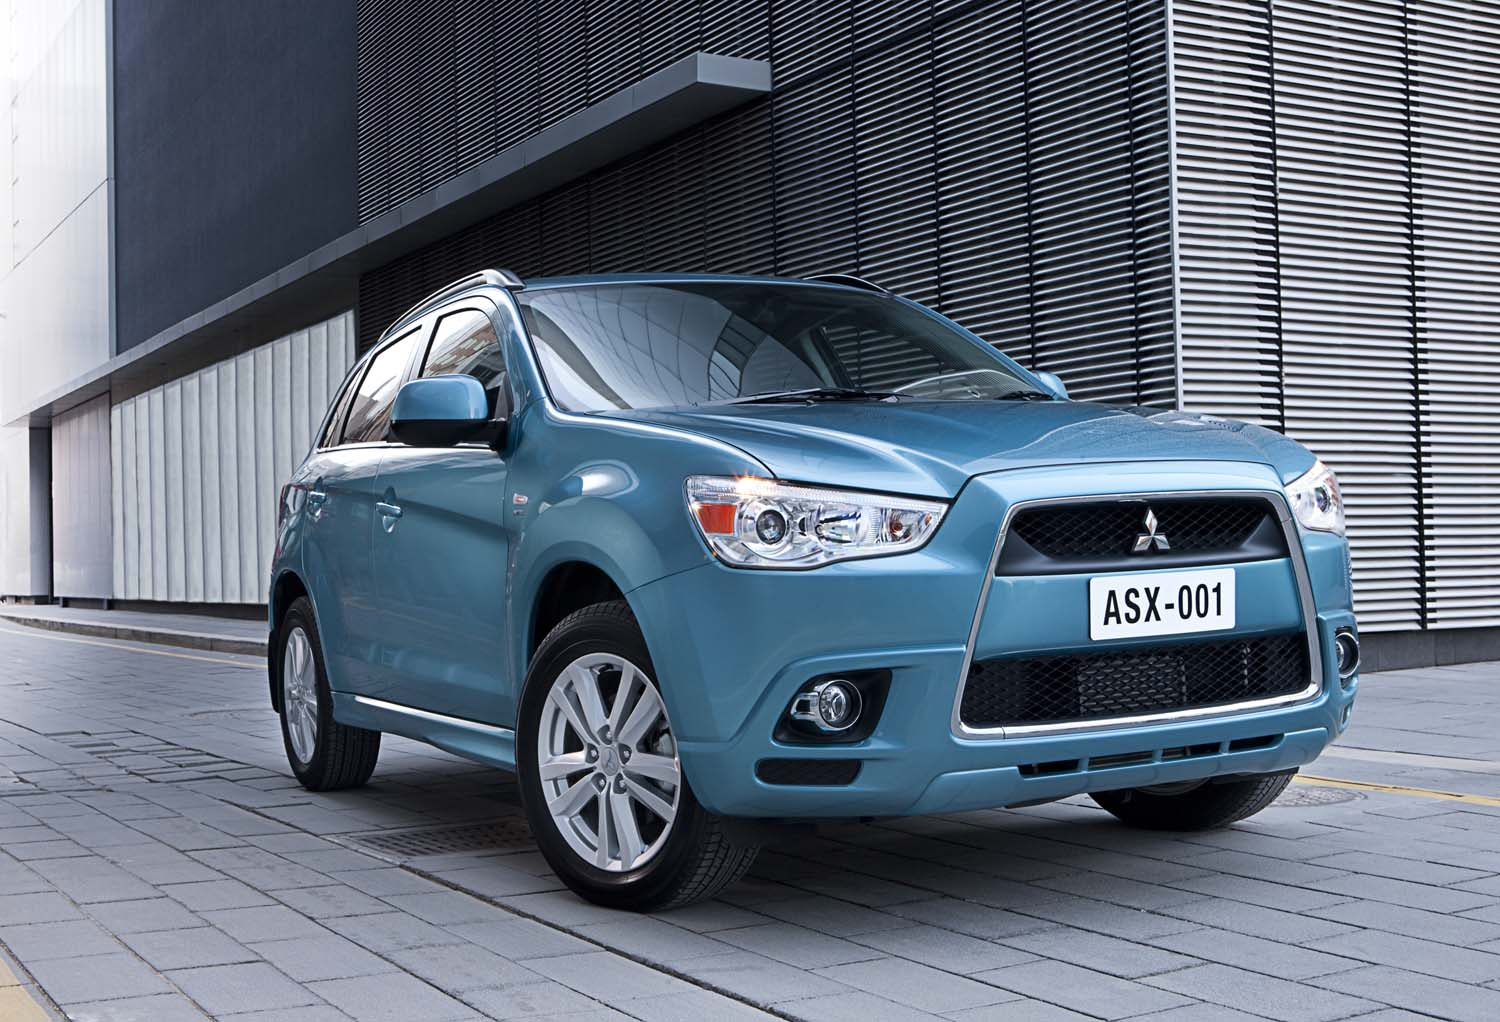 review 2010 mitsubishi asx first drive. Black Bedroom Furniture Sets. Home Design Ideas